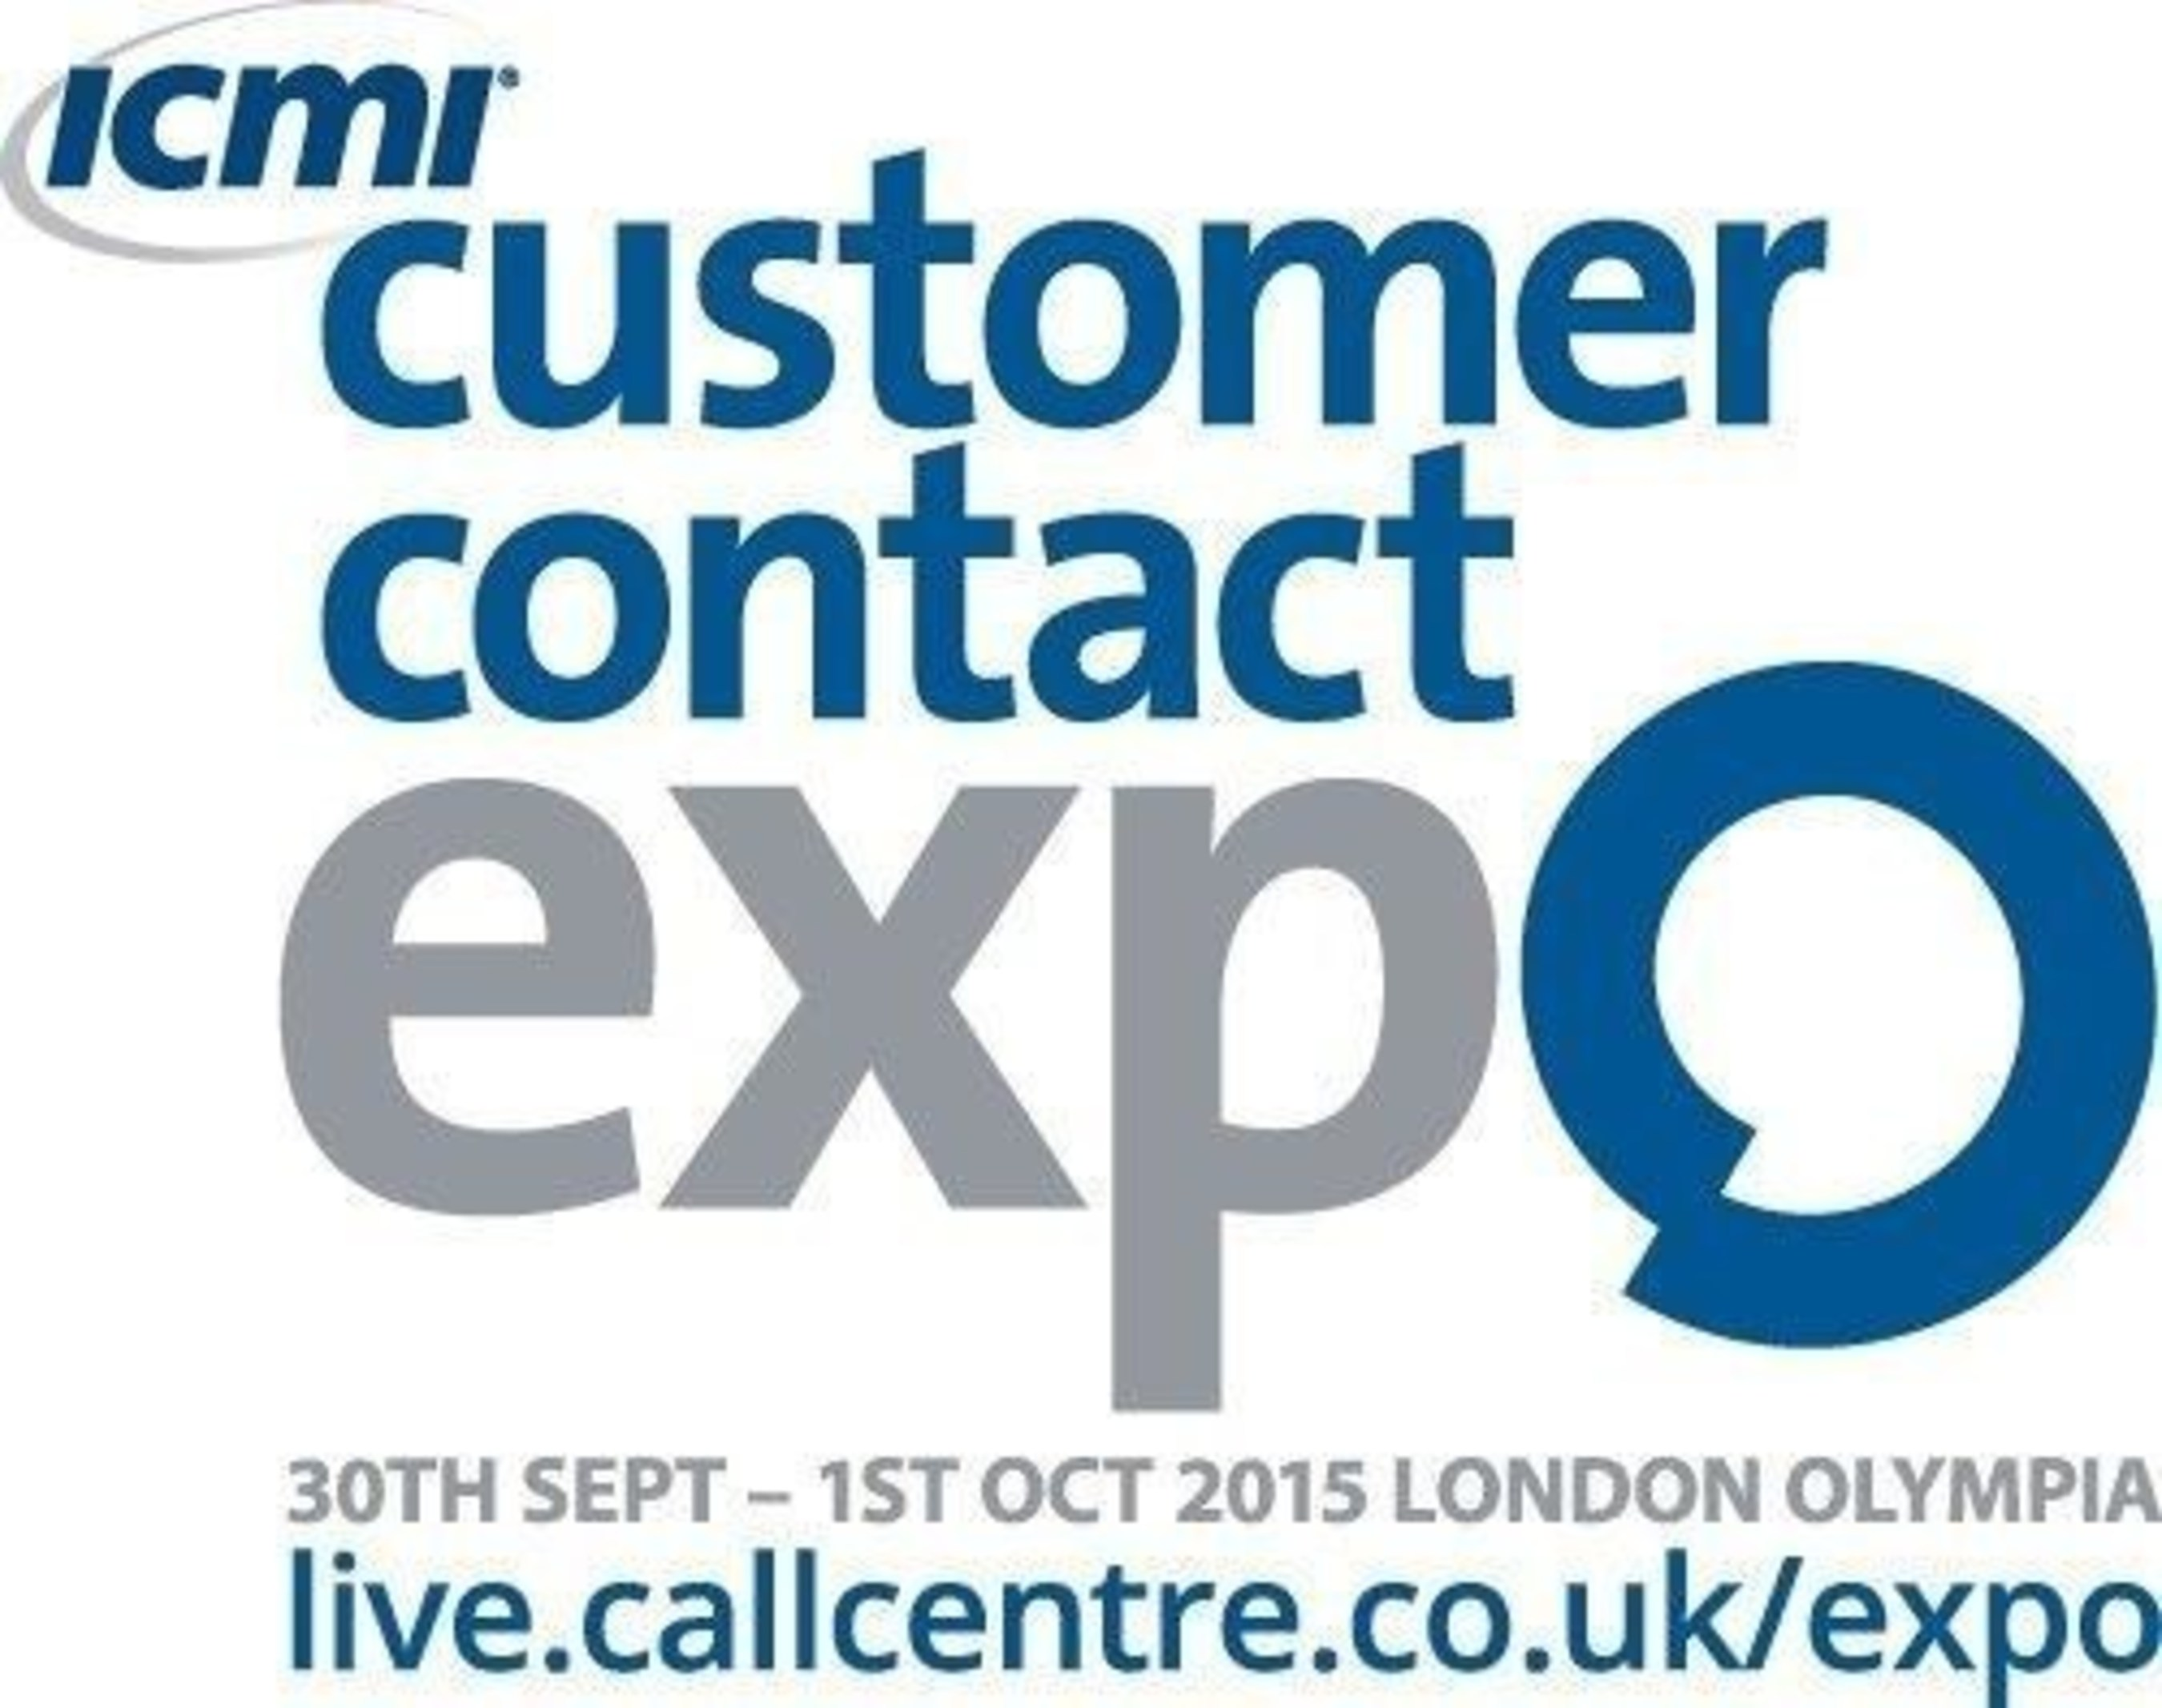 Customer Contact Expo Reveals Top Line-up of Speakers for 2015 Show